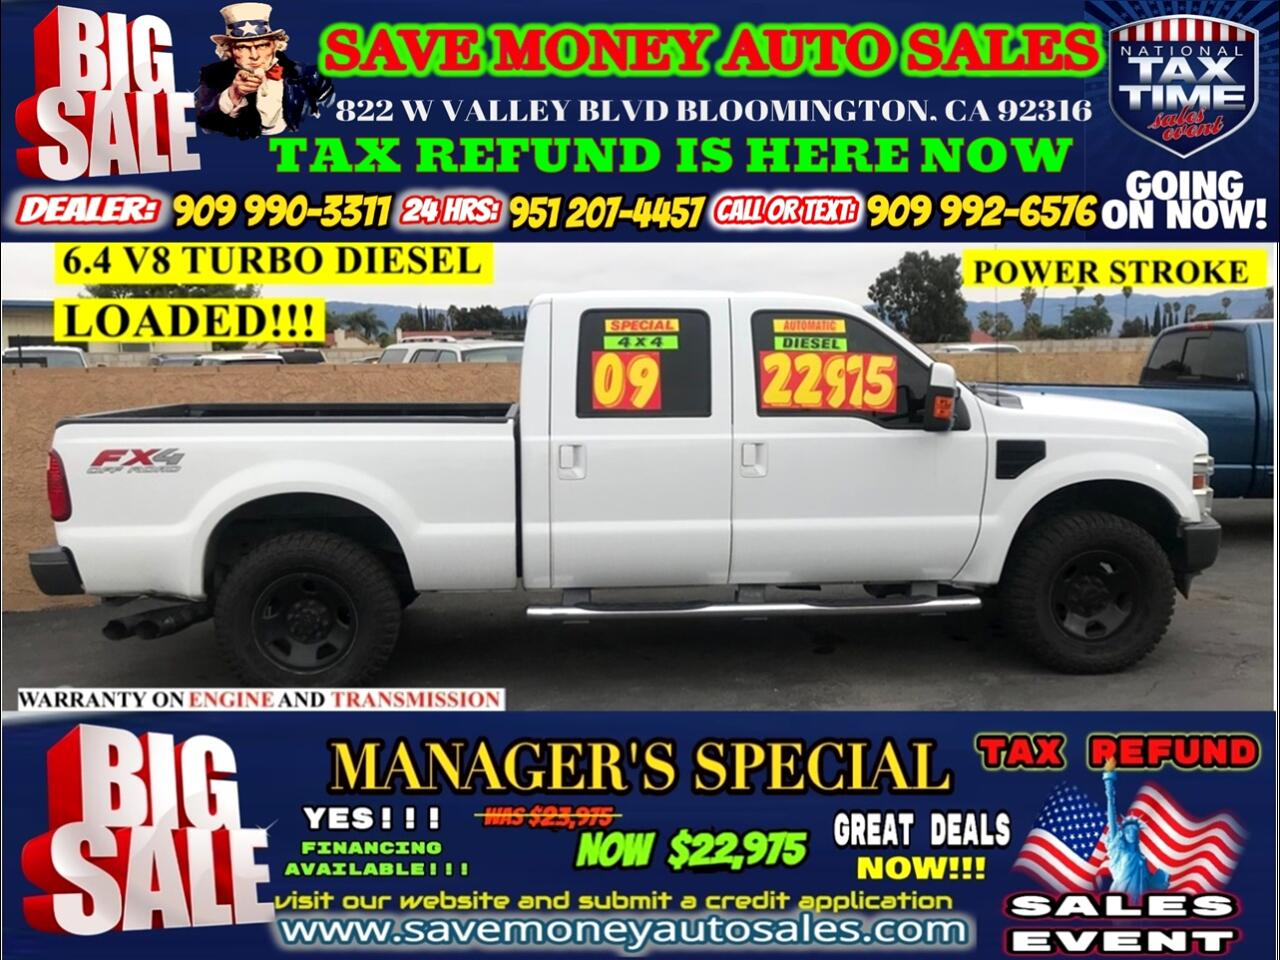 2009 Ford F-250 HD Crew Cab FX4>>TURBO DIESEL>ALL LOADED PLUS TOW PACKAGE!!!